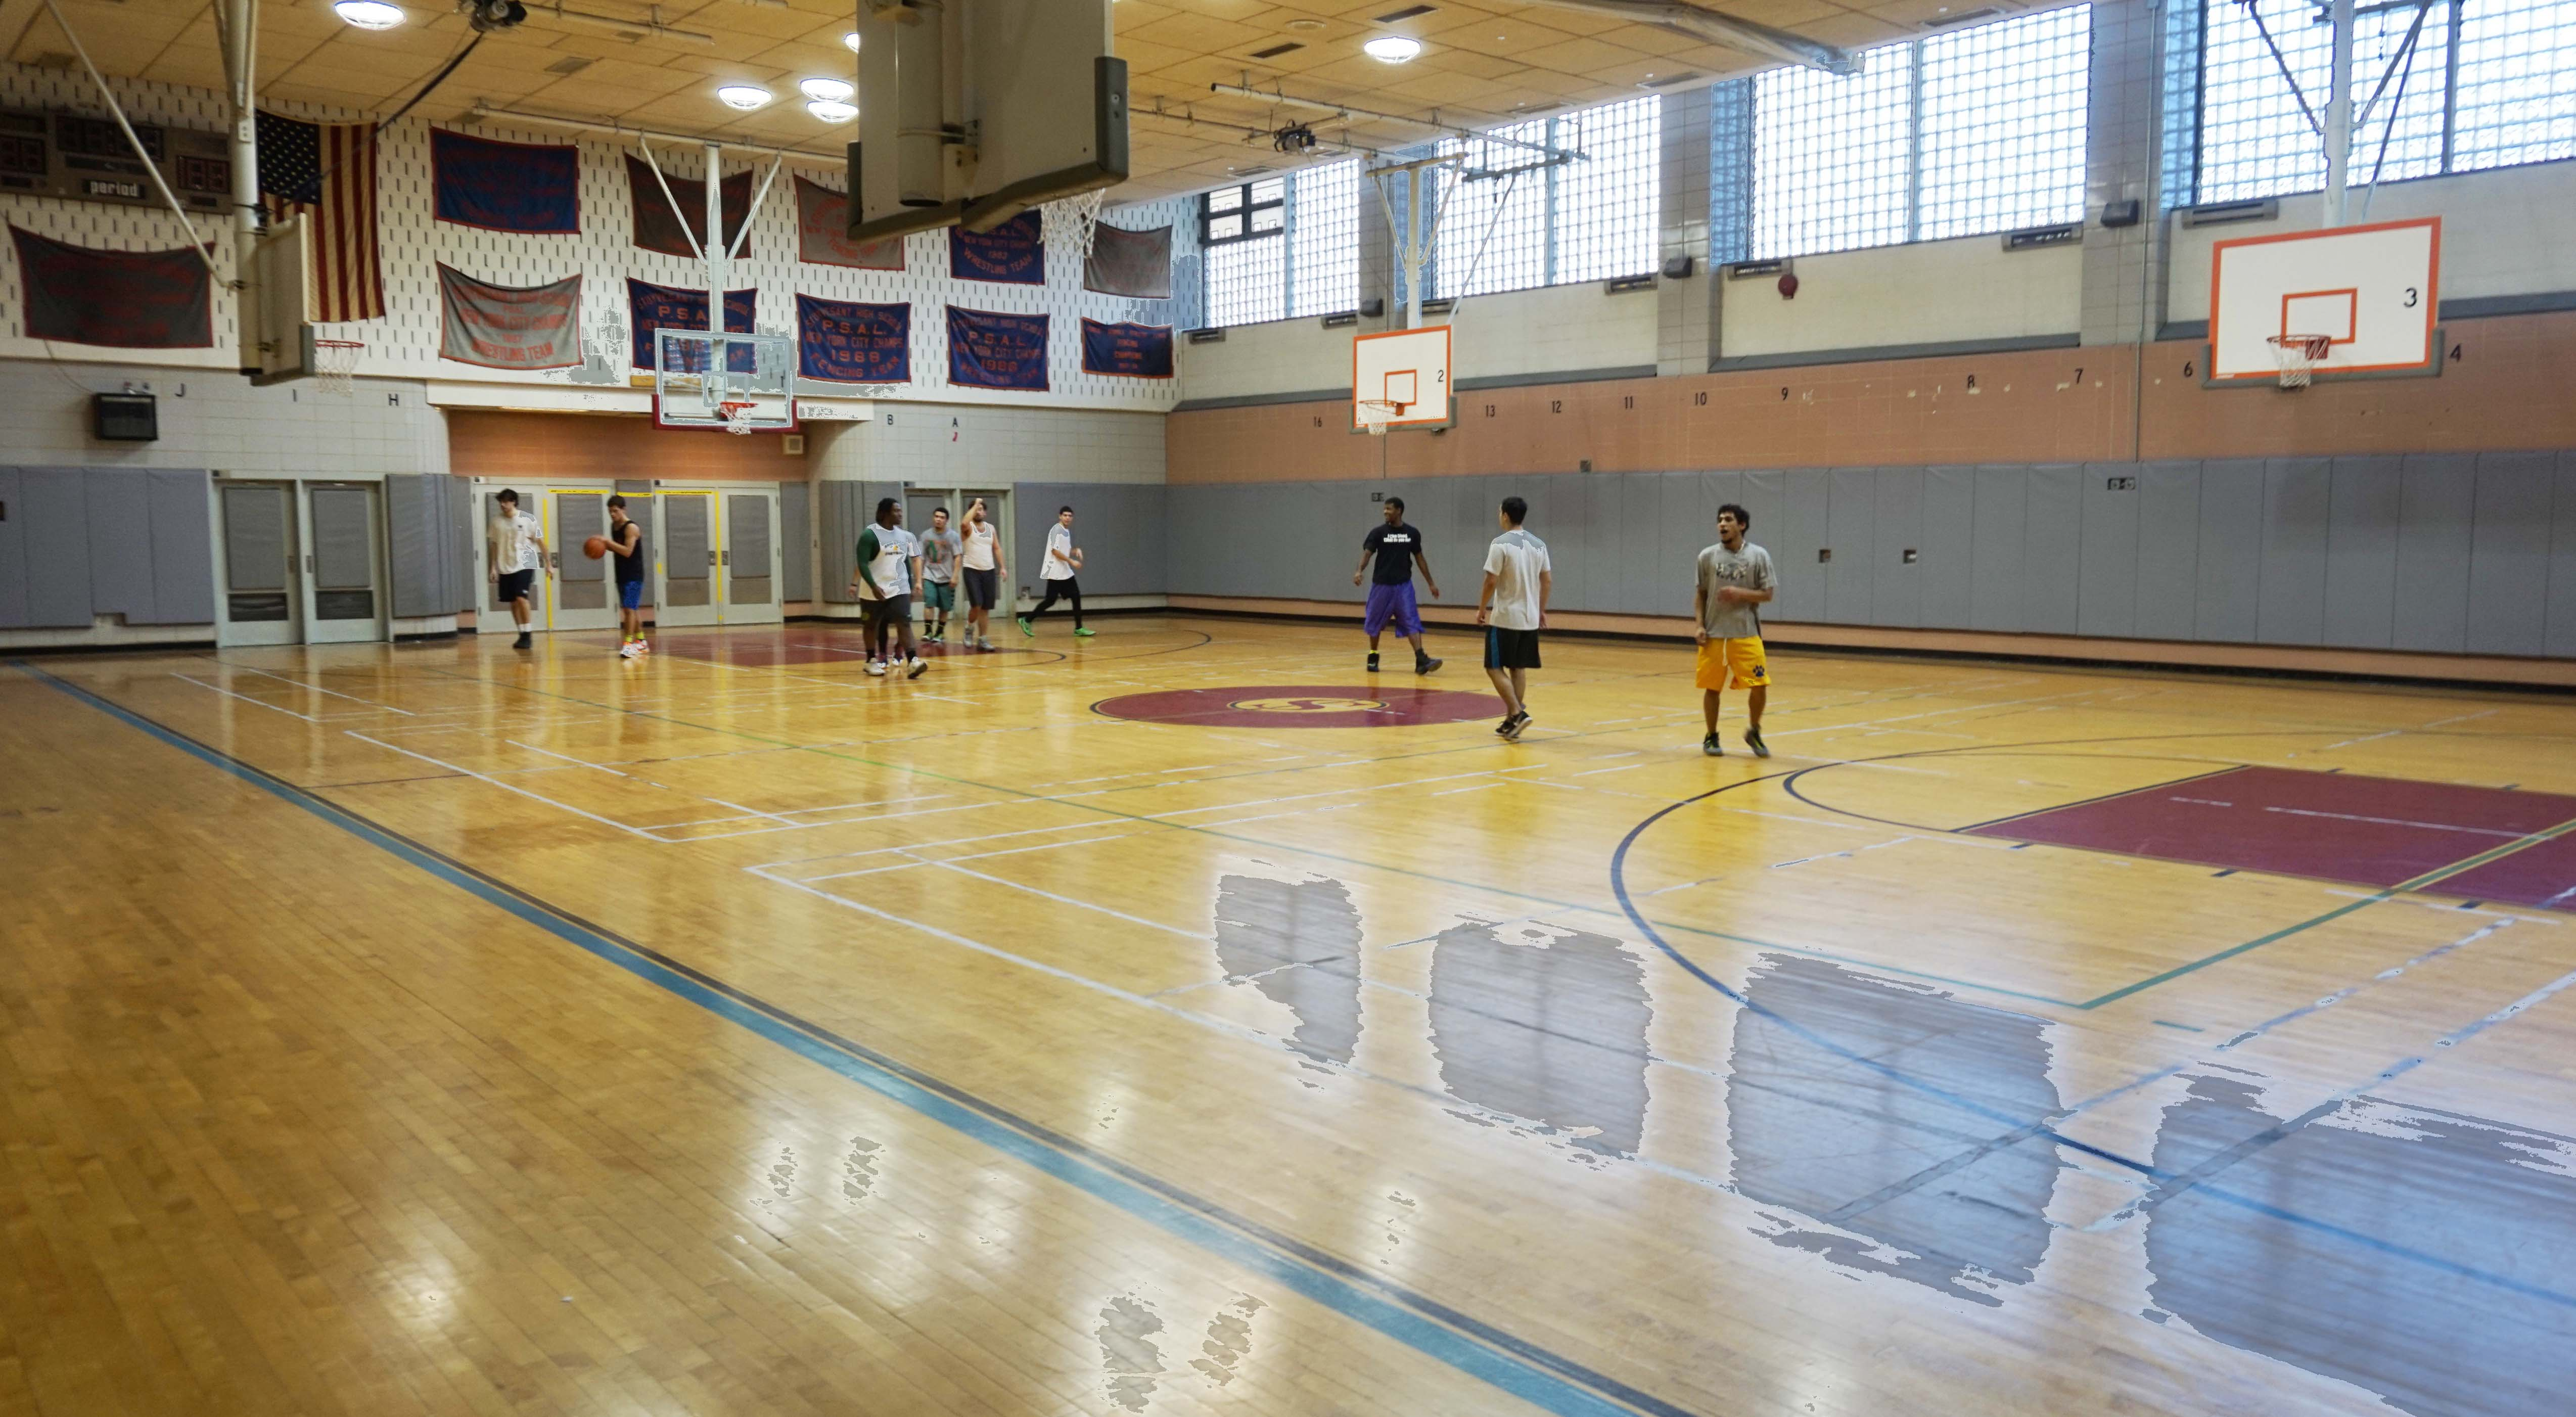 Stuyvesant basketball court